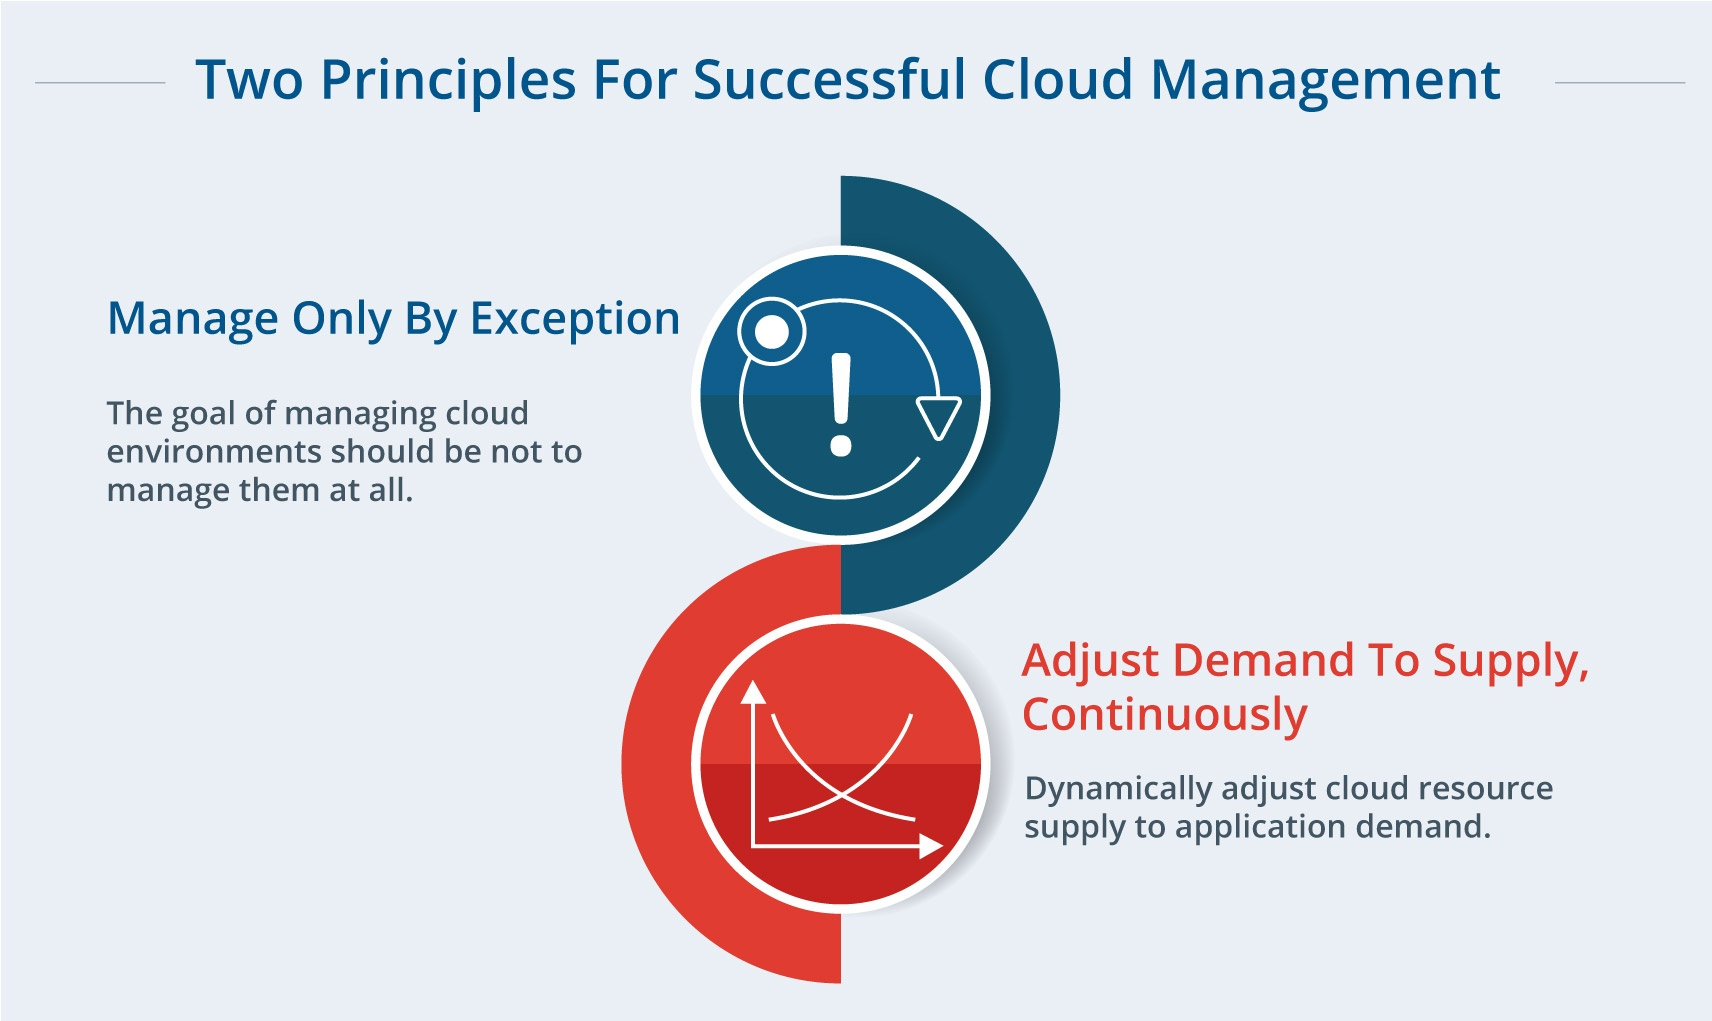 Two Principles For Successful Cloud Management